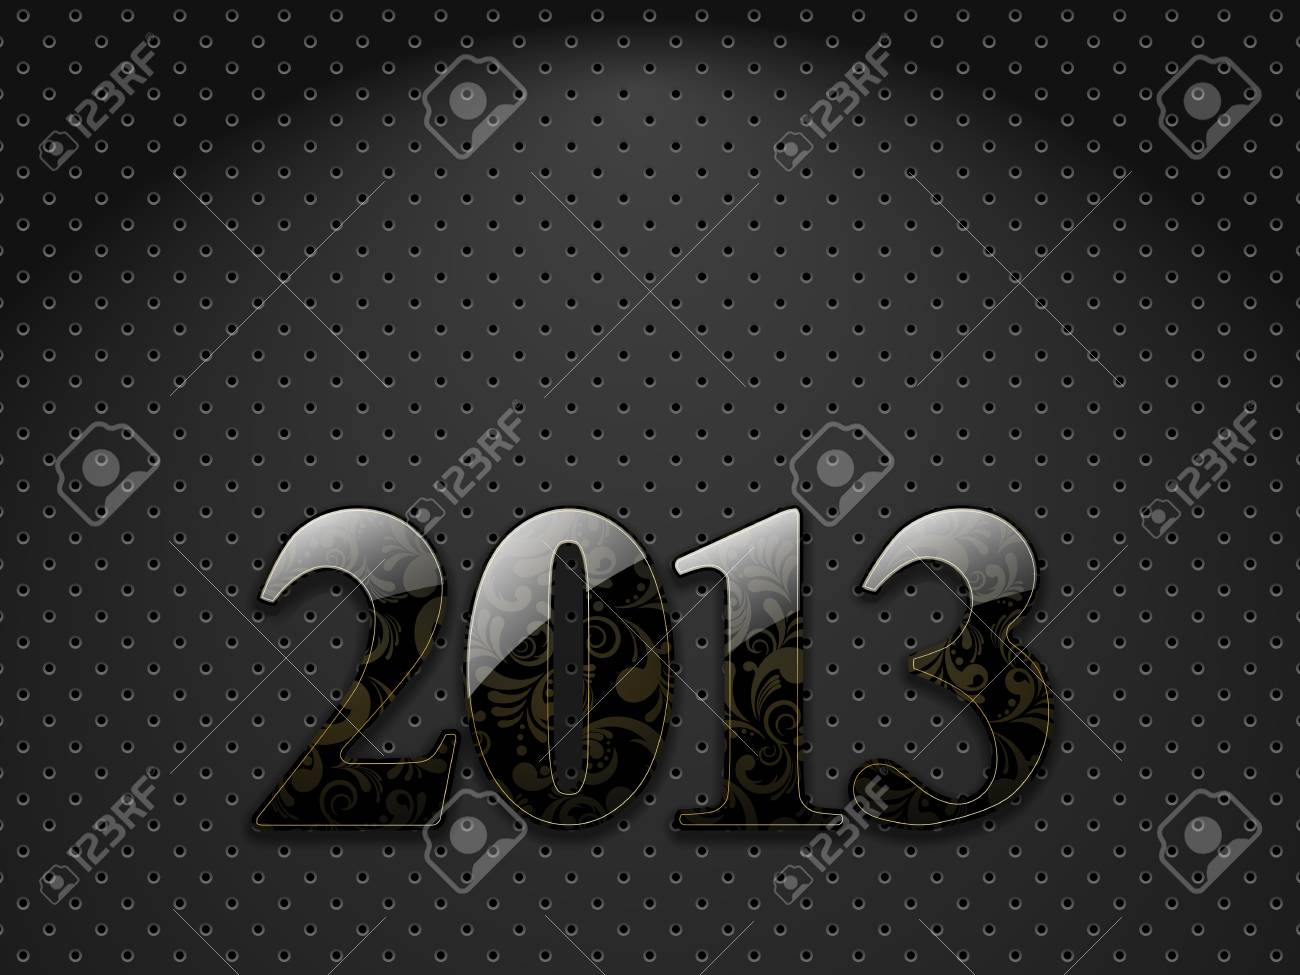 New year 2013, metallic textured background with floral ornate digits Stock Vector - 16334916